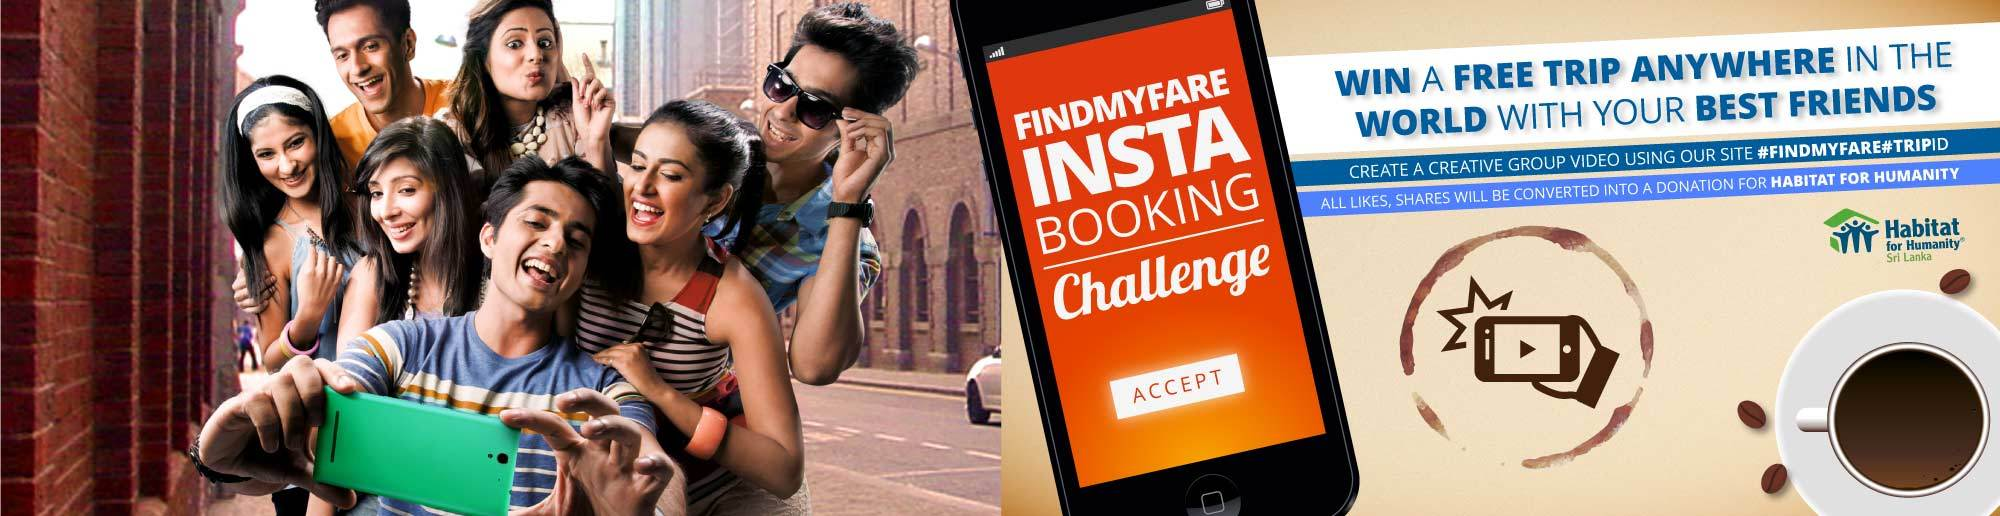 Findmyfare Insta Booking Challenge!